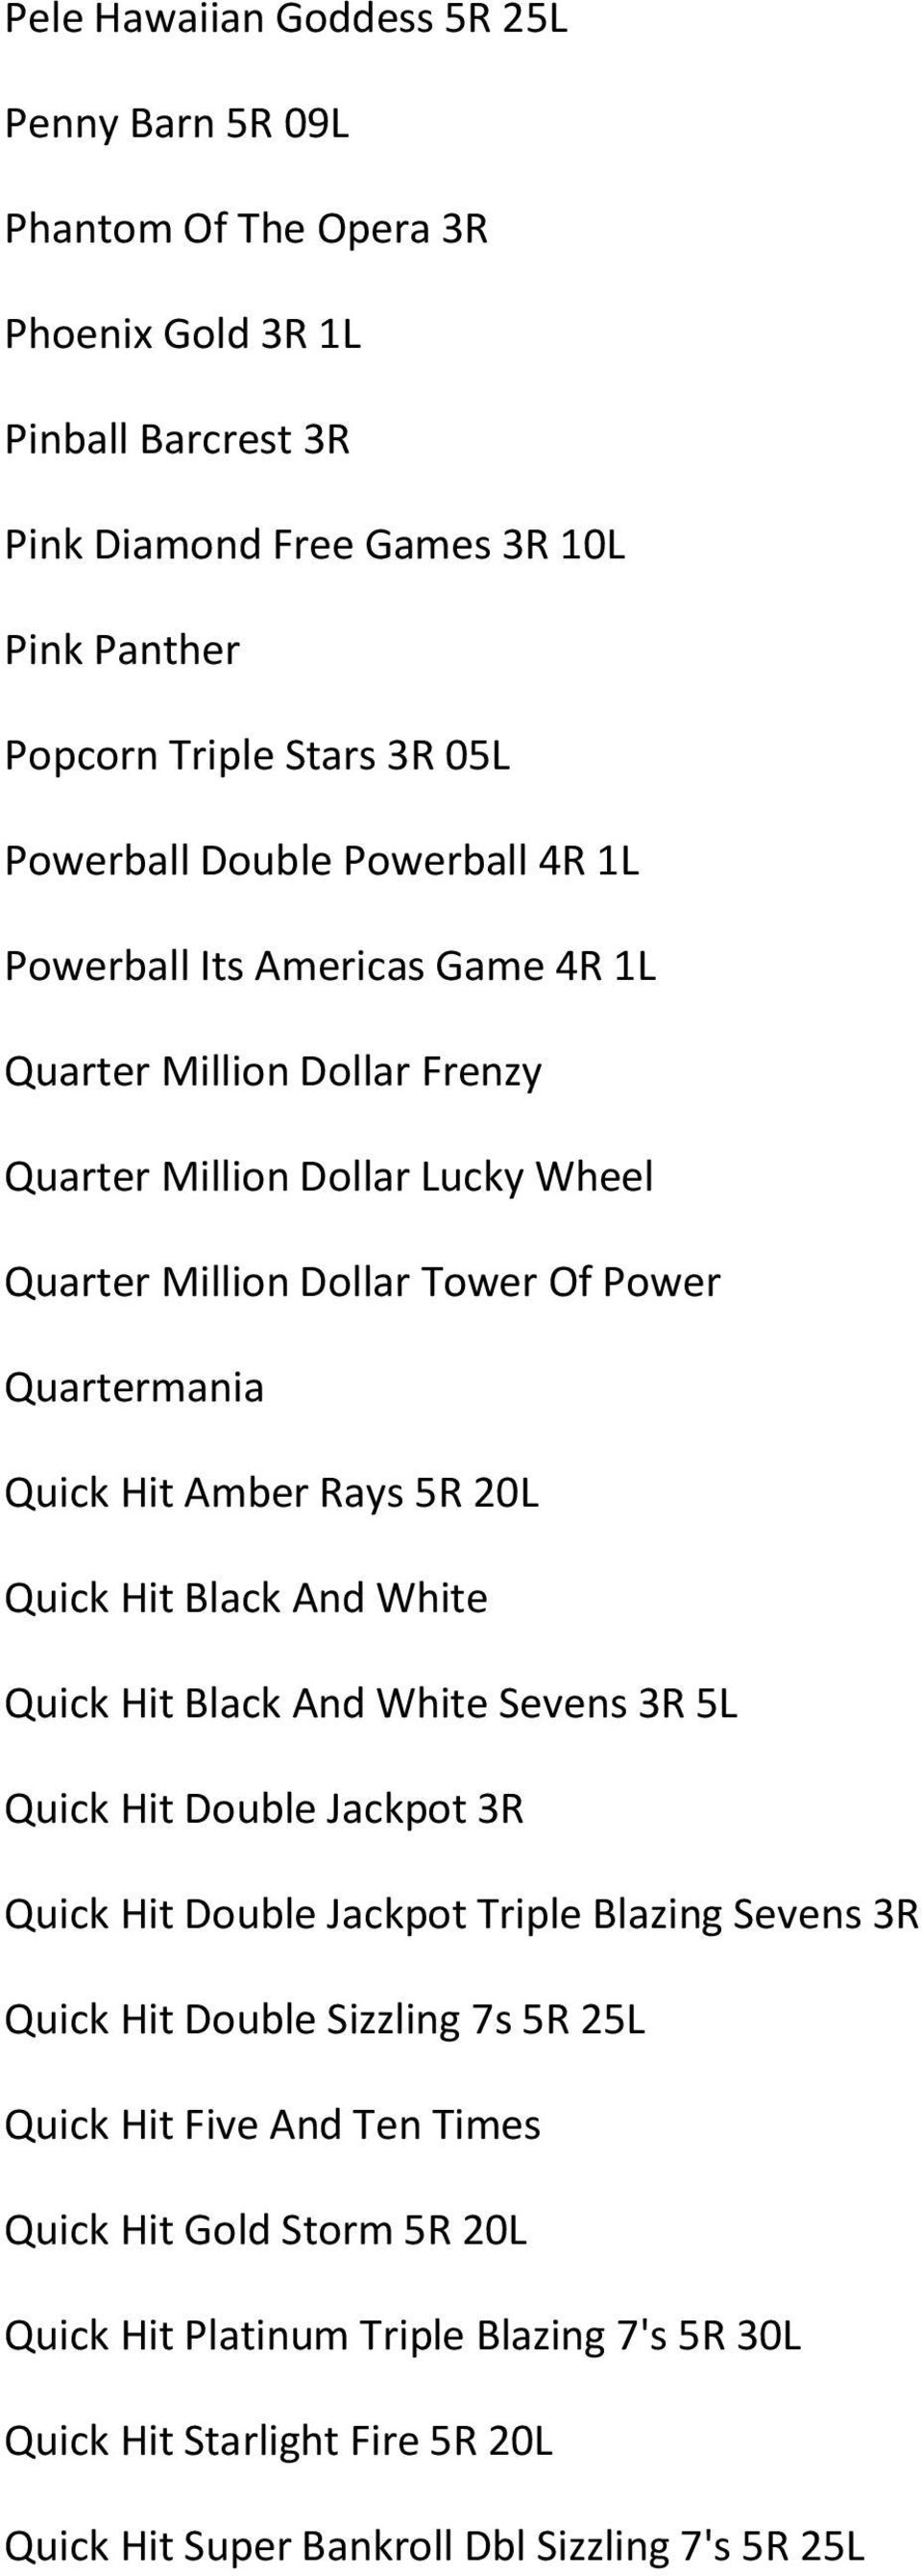 Hit Amber Rays 5R 20L Quick Hit Black And White Quick Hit Black And White Sevens 3R 5L Quick Hit Double Jackpot 3R Quick Hit Double Jackpot Triple Blazing Sevens 3R Quick Hit Double